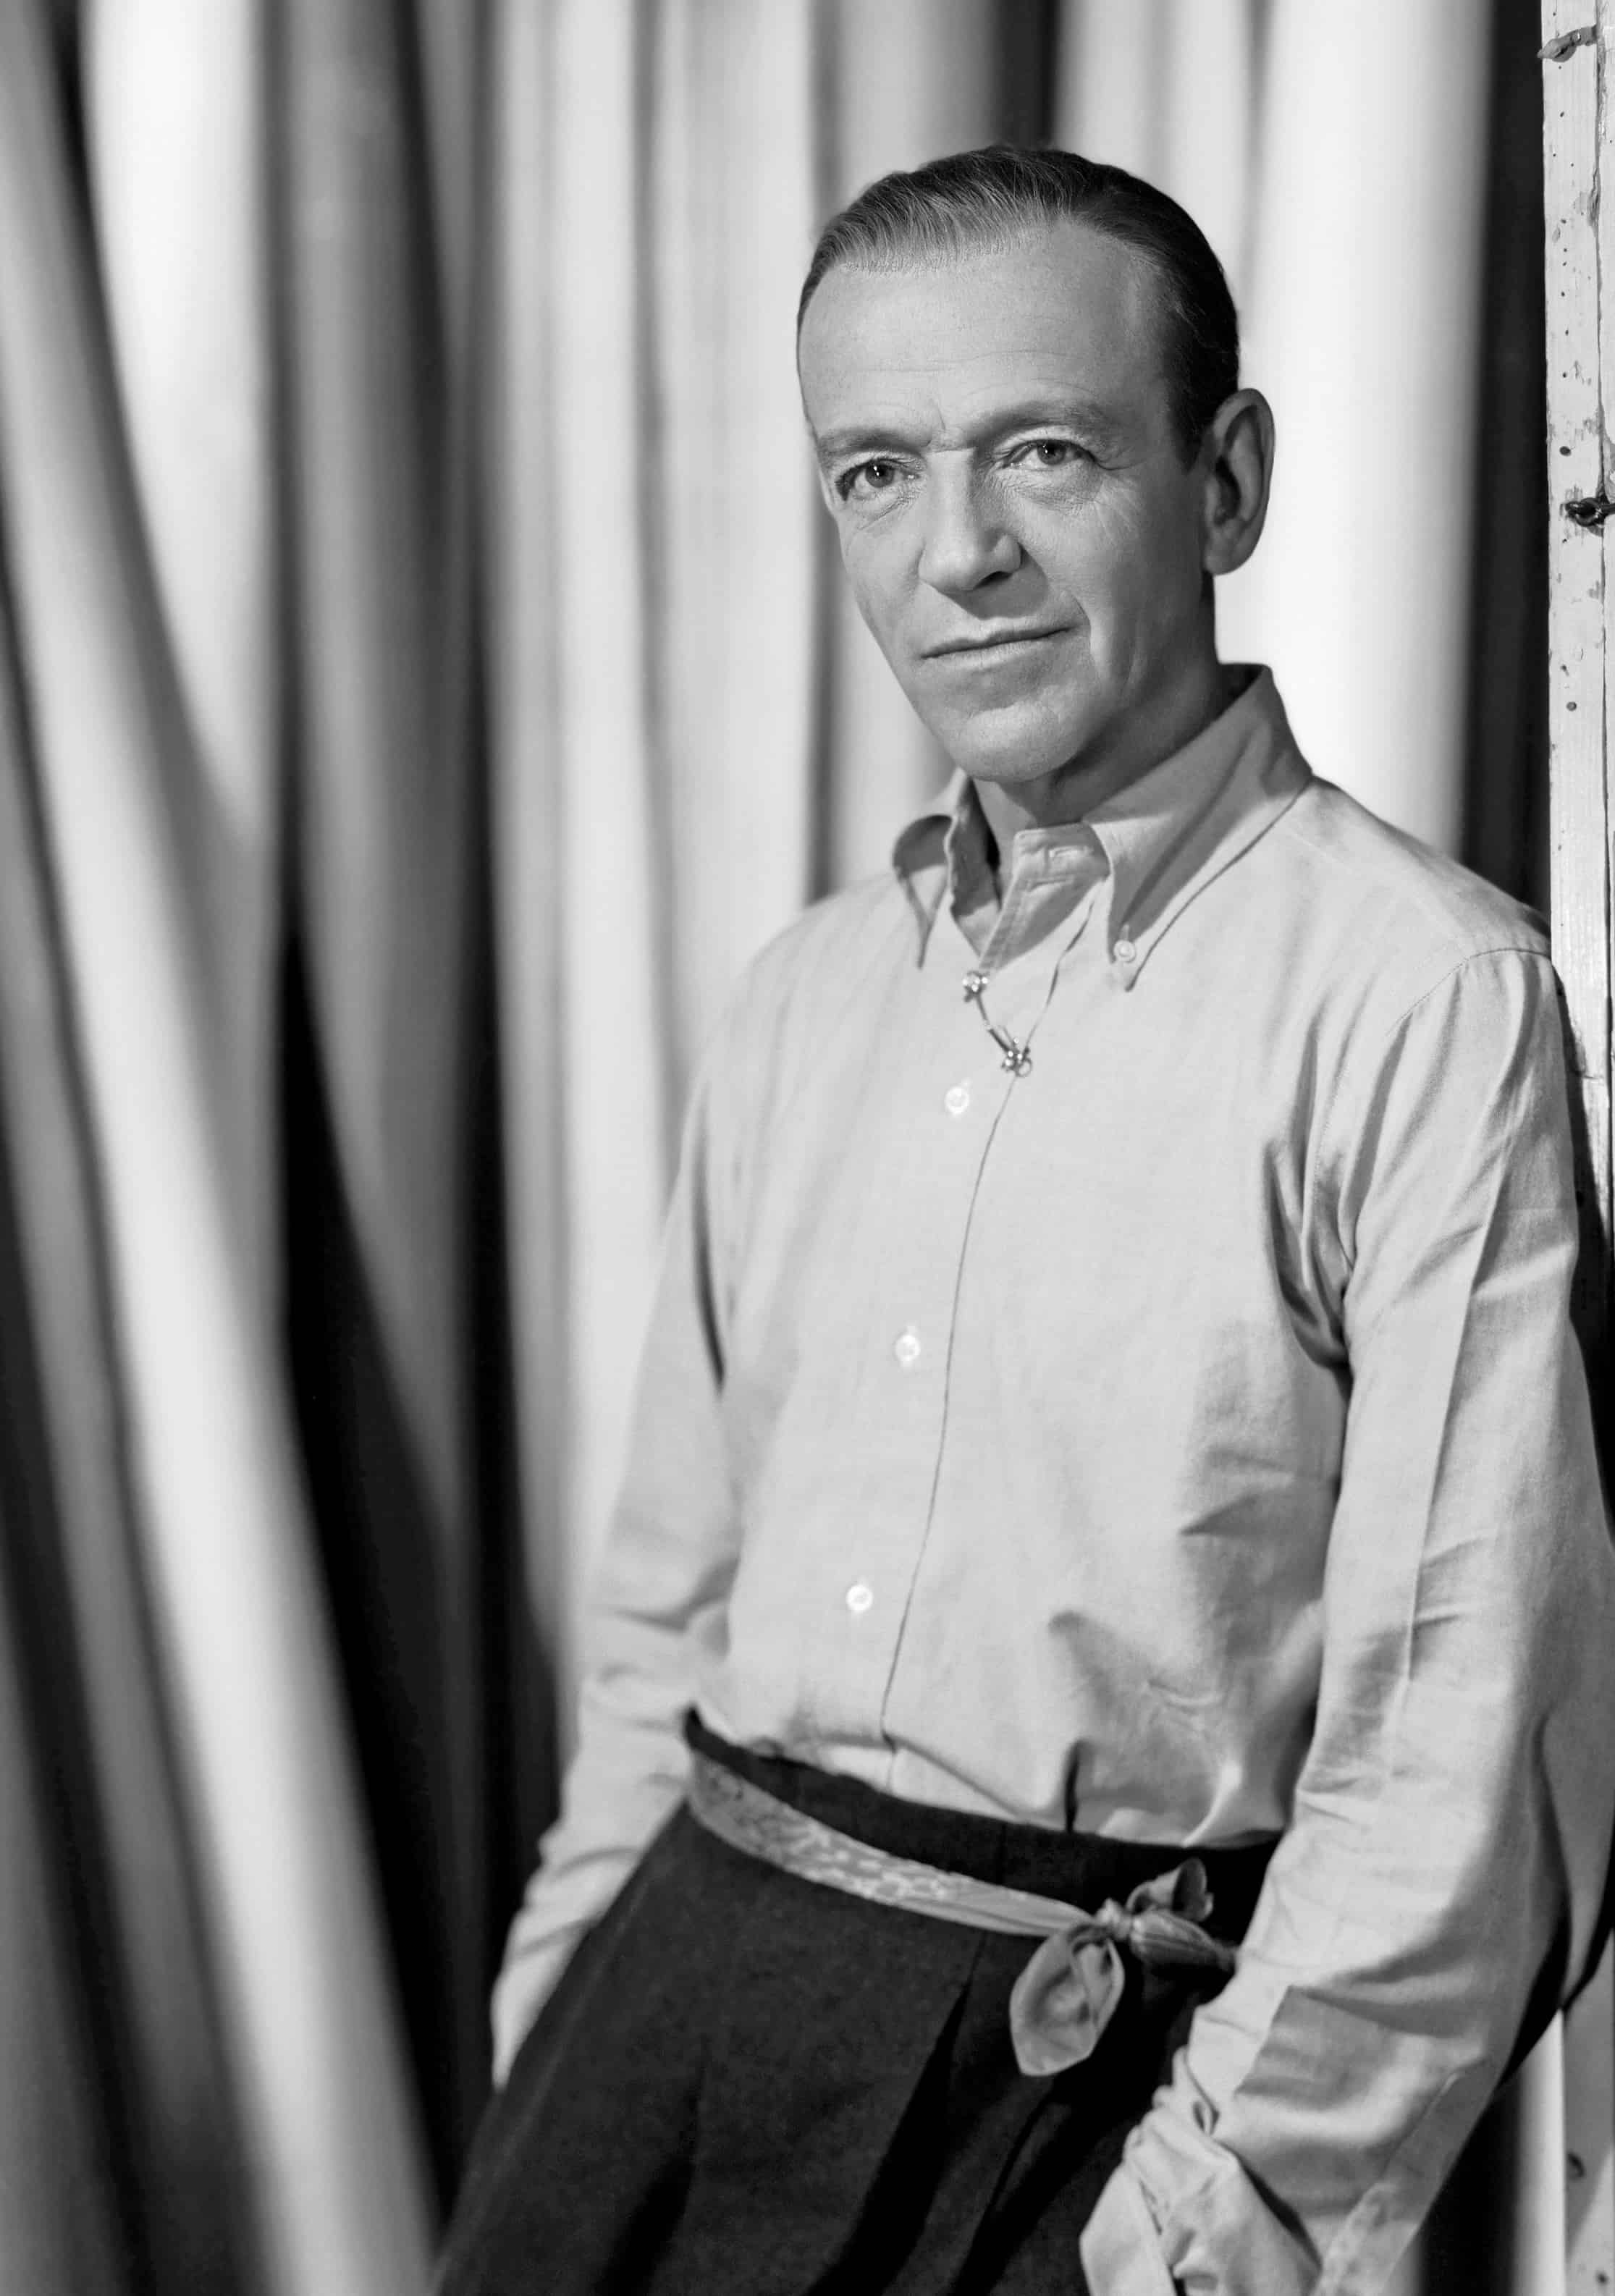 Oxford Cloth Button Down Shirt Guide Ocbd Gentlemans Gazette D Island Casual Wrinkle Vintage Fred Astaire Wearing An Casually